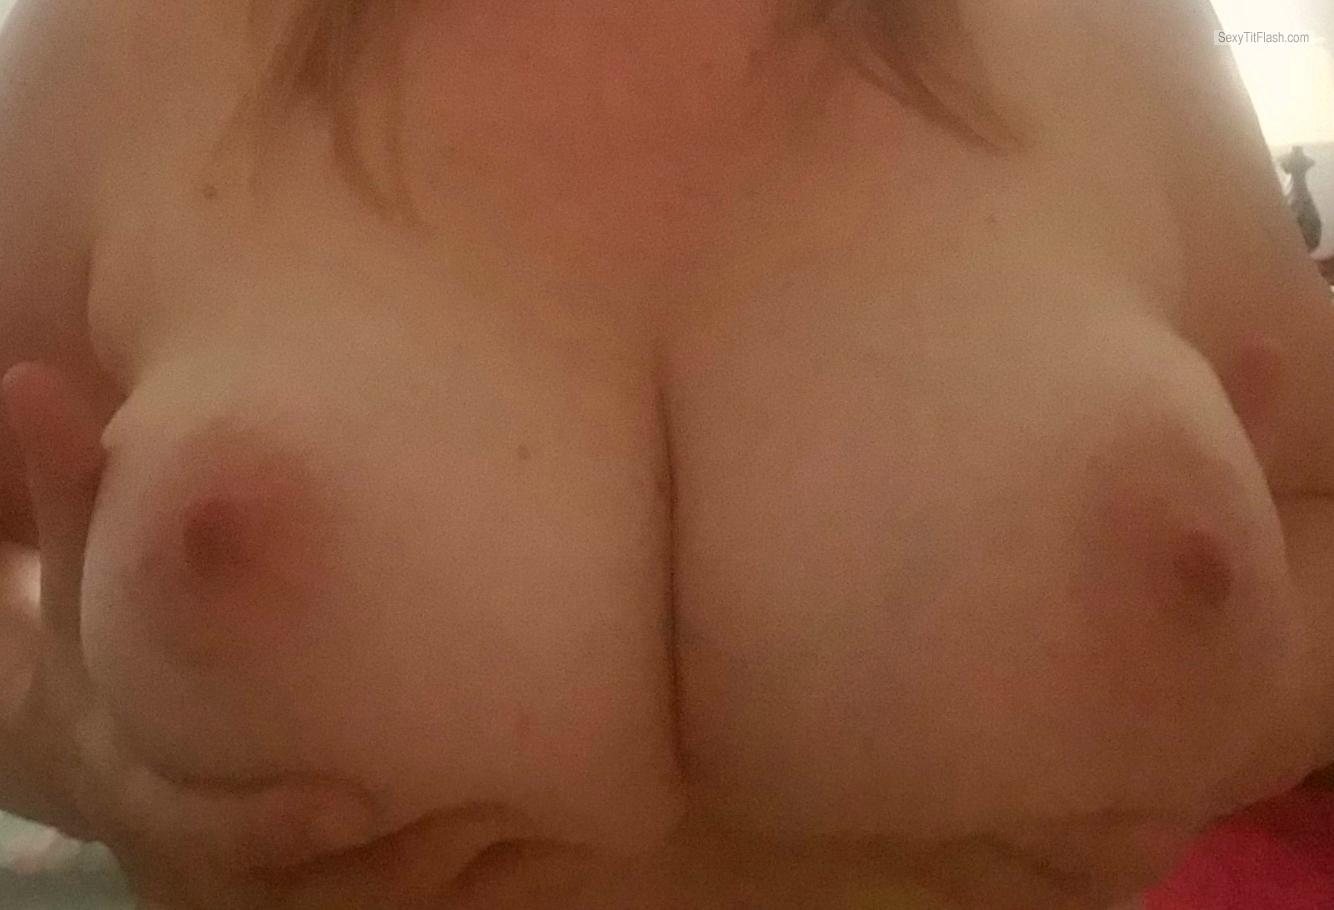 My Big Tits Selfie by Liz